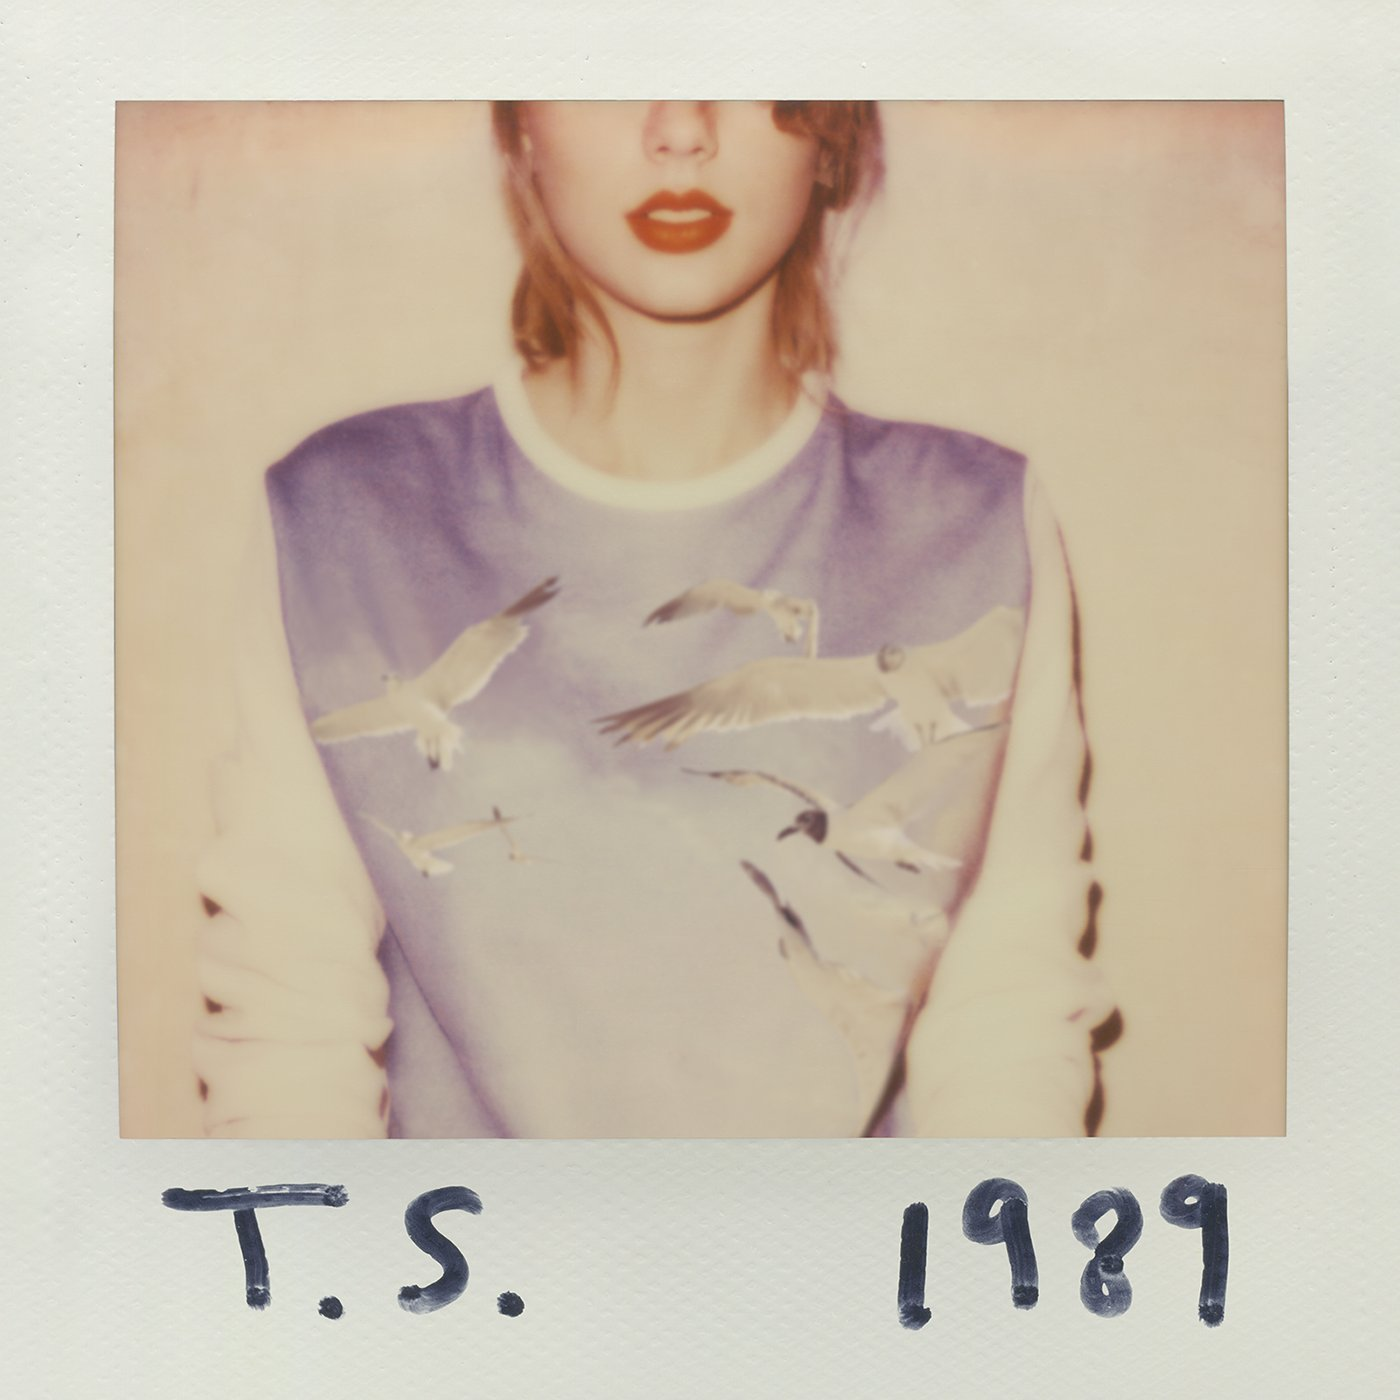 1989 - Taylor Swift album art